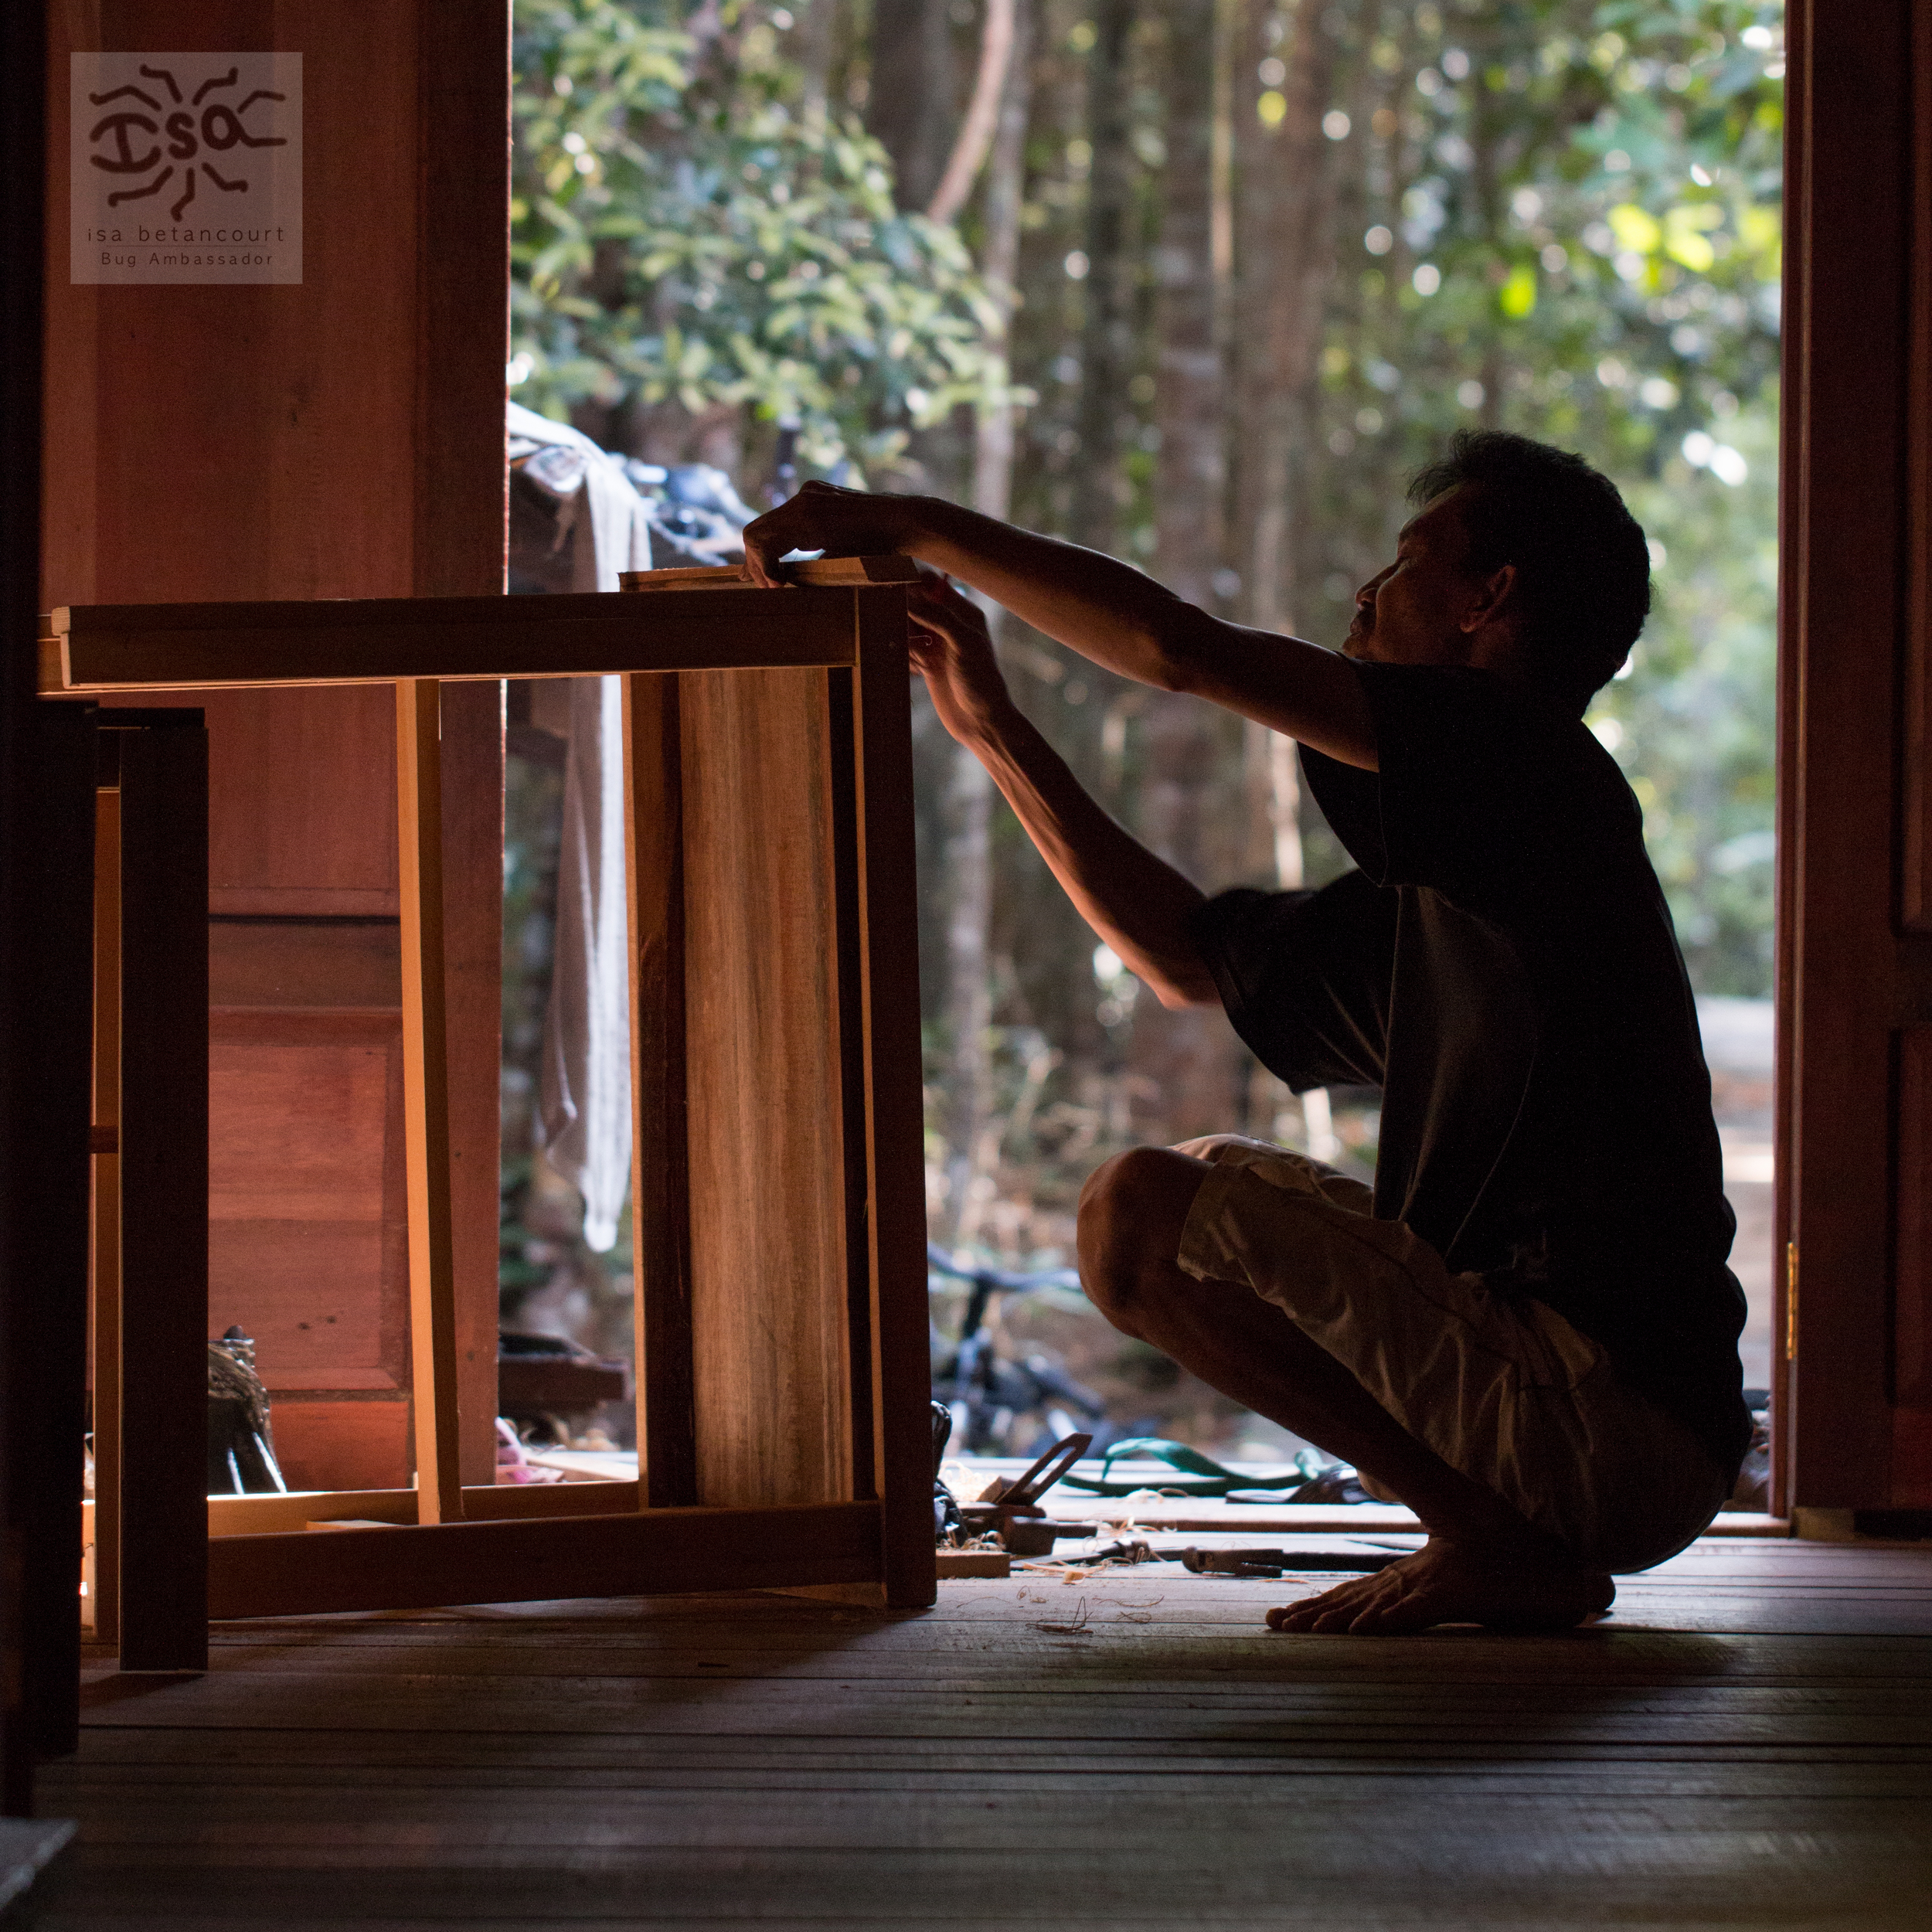 Pak Harley constructs desks for the rooms of the Tuanan Research Camp in Central Kalimantan, Indonesia.